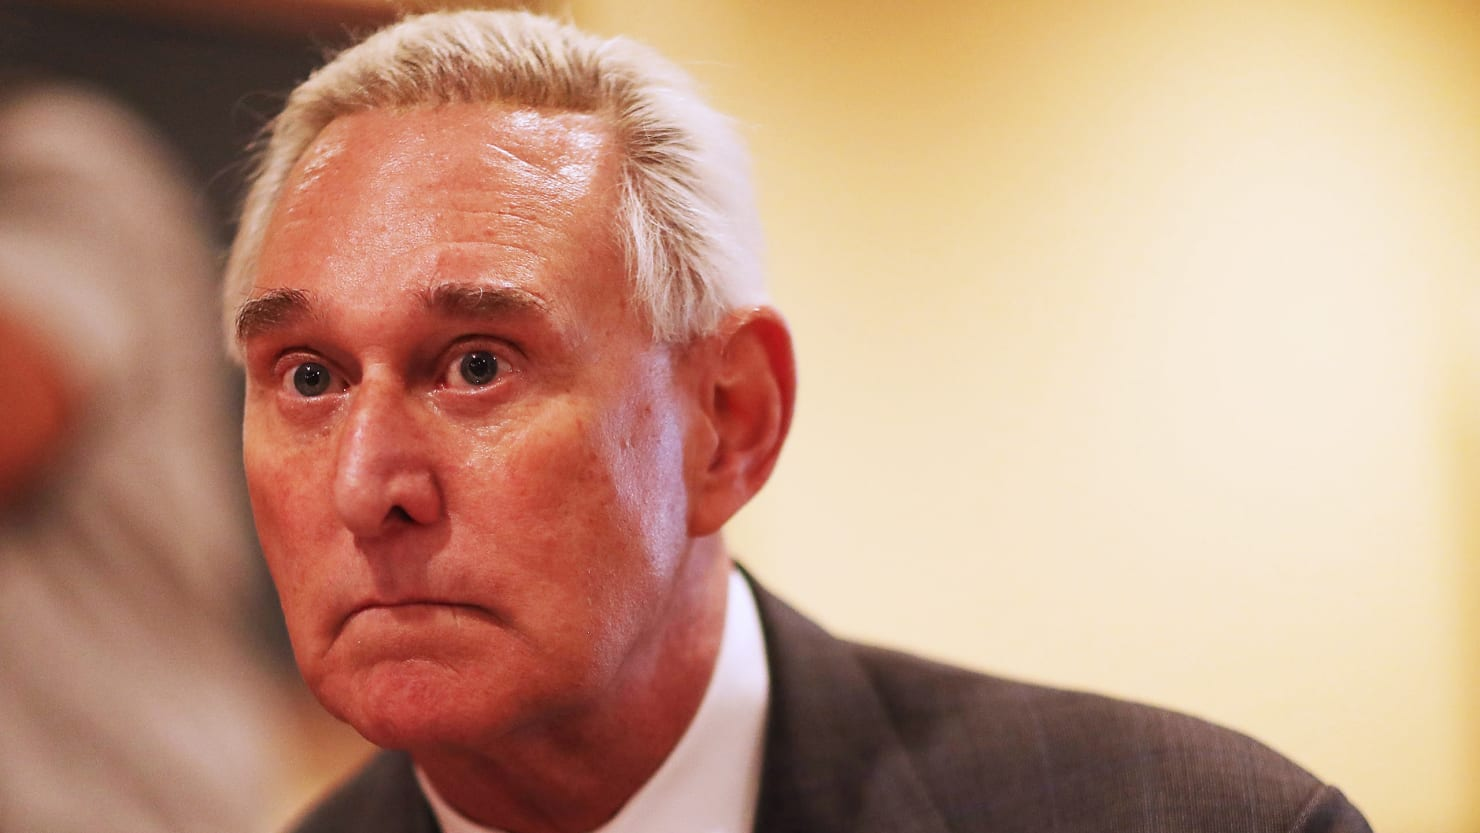 Senate Intelligence Committee Now Wants to Grill Roger Stone